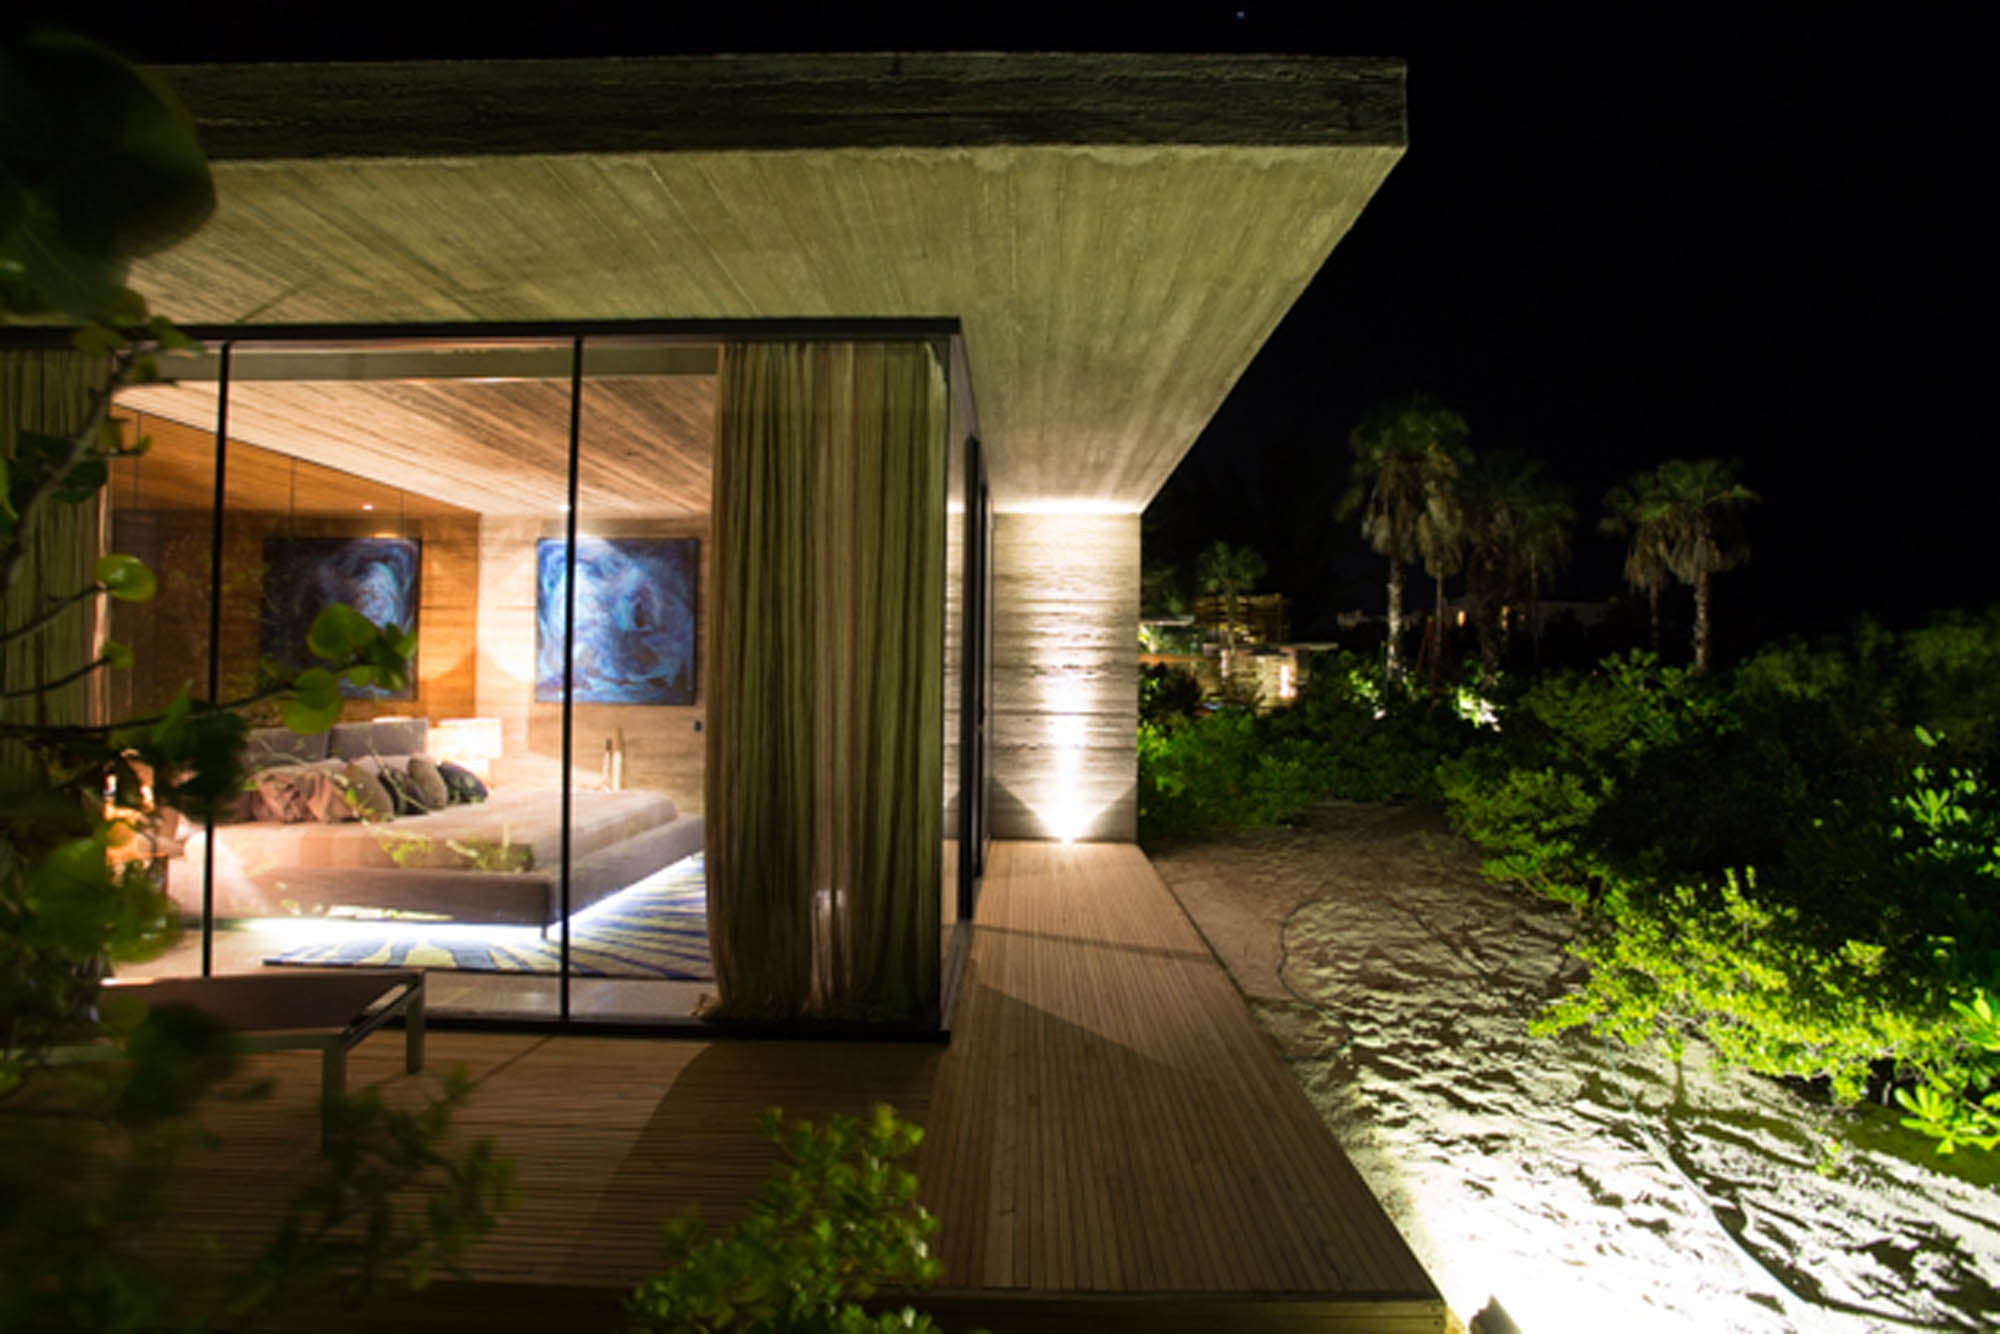 Concrete, natural wood and glass are perfectly combined at Villa Islander, Providenciales (Provo), Turks and Caicos Islands, B.W.I.